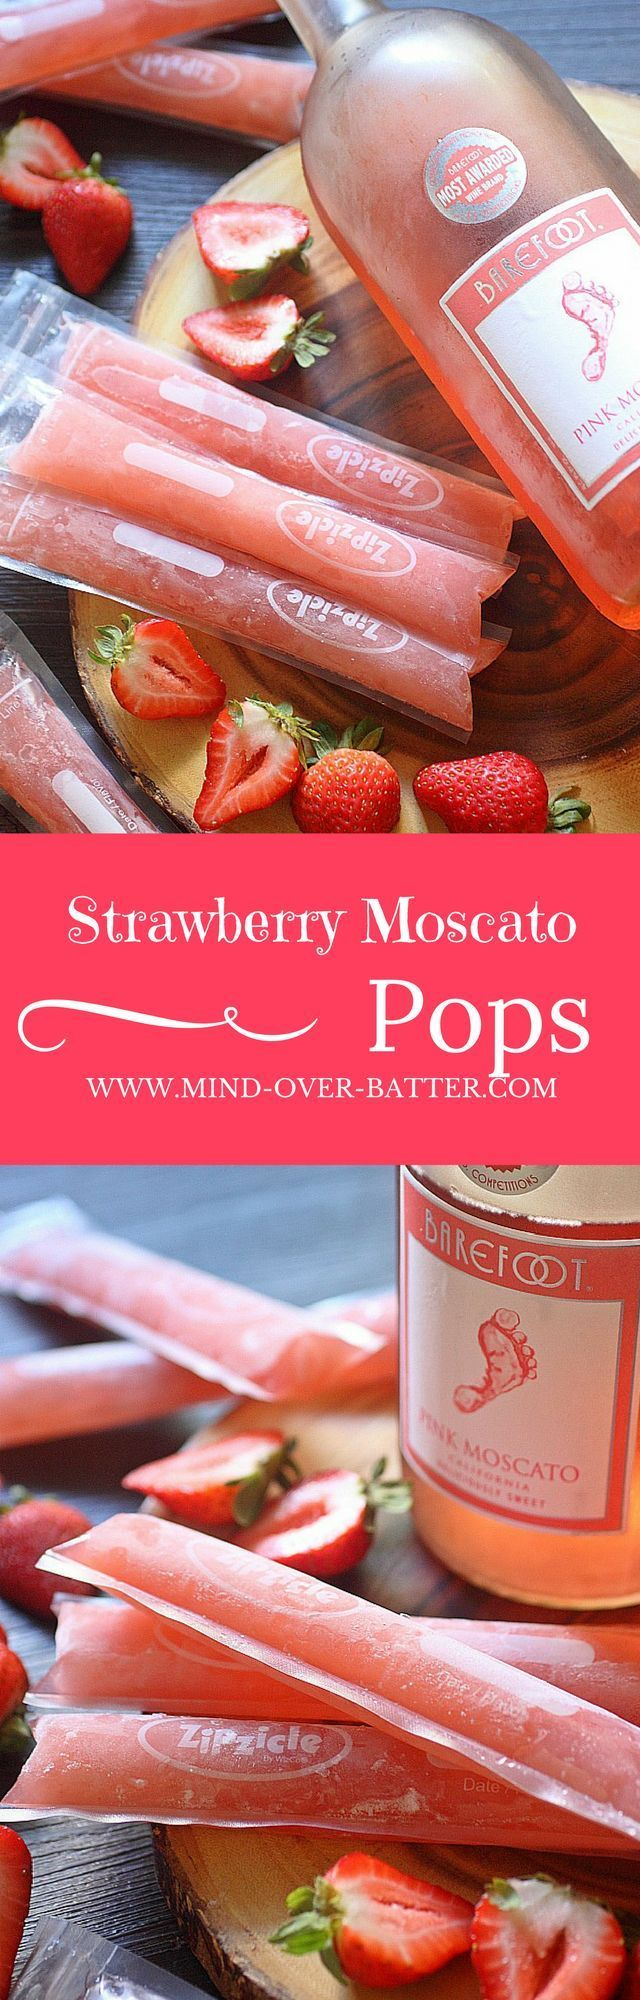 Strawberry Moscato Ice Pops Mind Over Batter Recipe Food Recipes Yummy Drinks